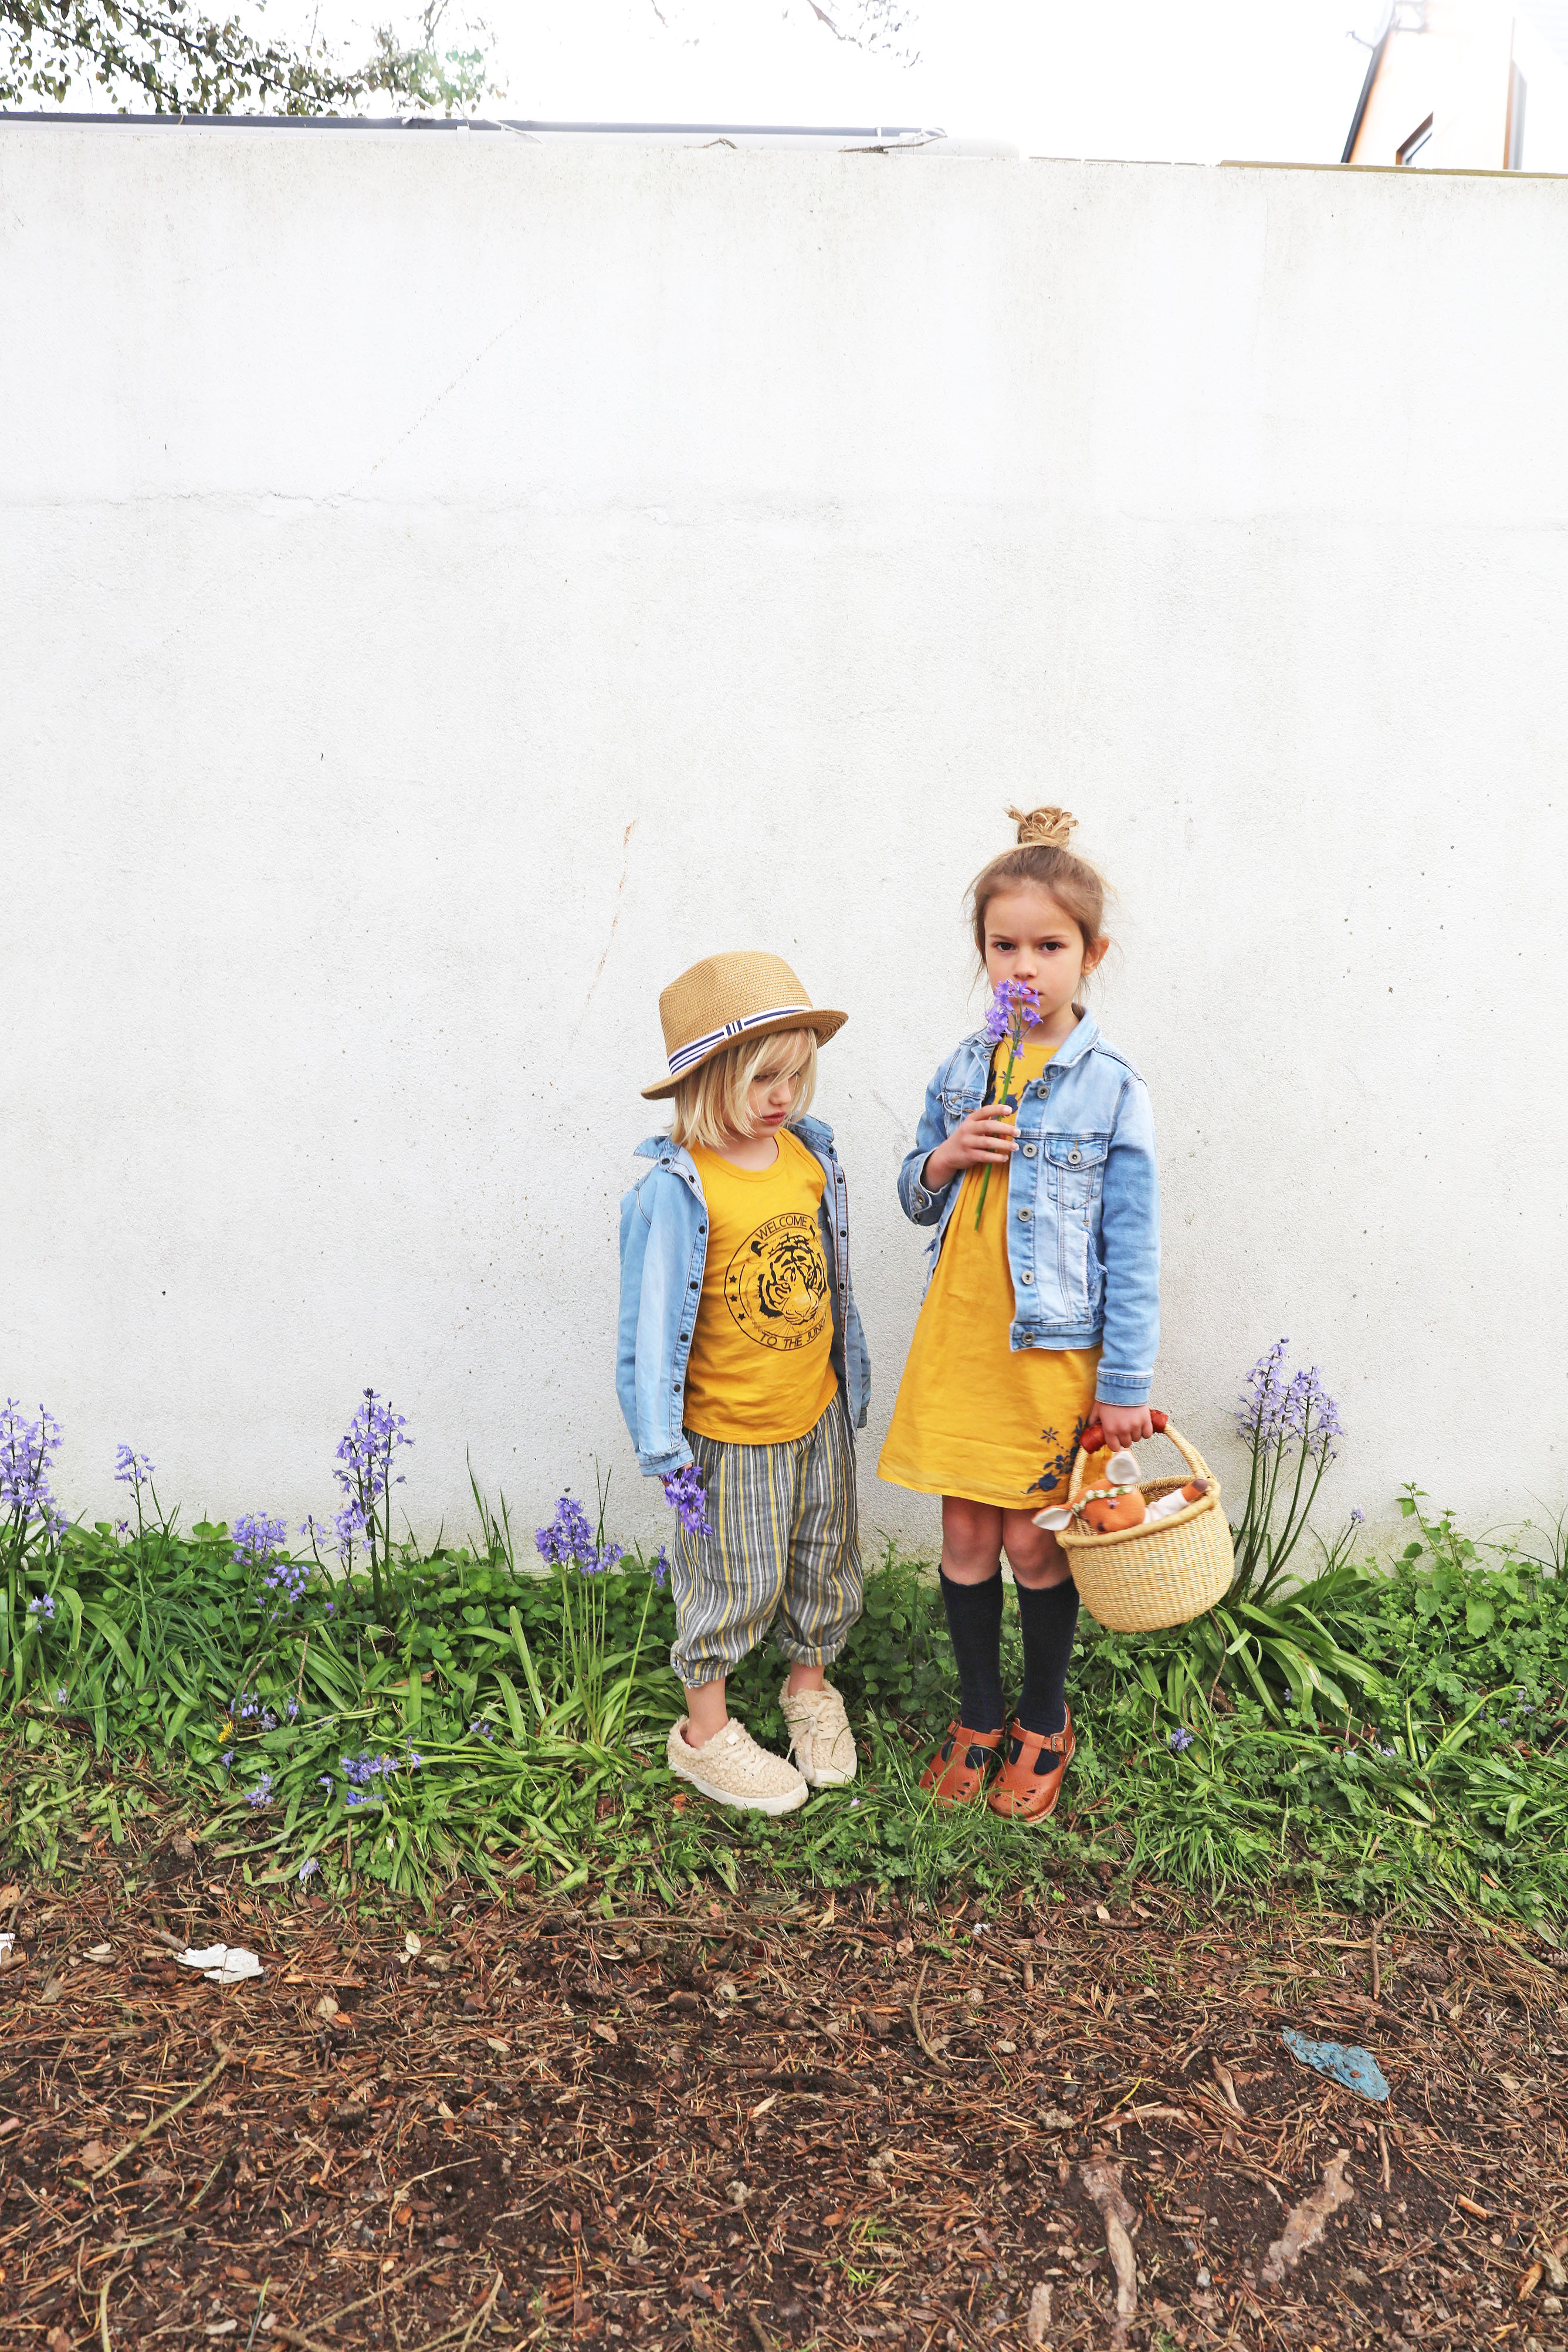 Louis_louise_ss18_kids_clothes_dress_young_soles_shoes